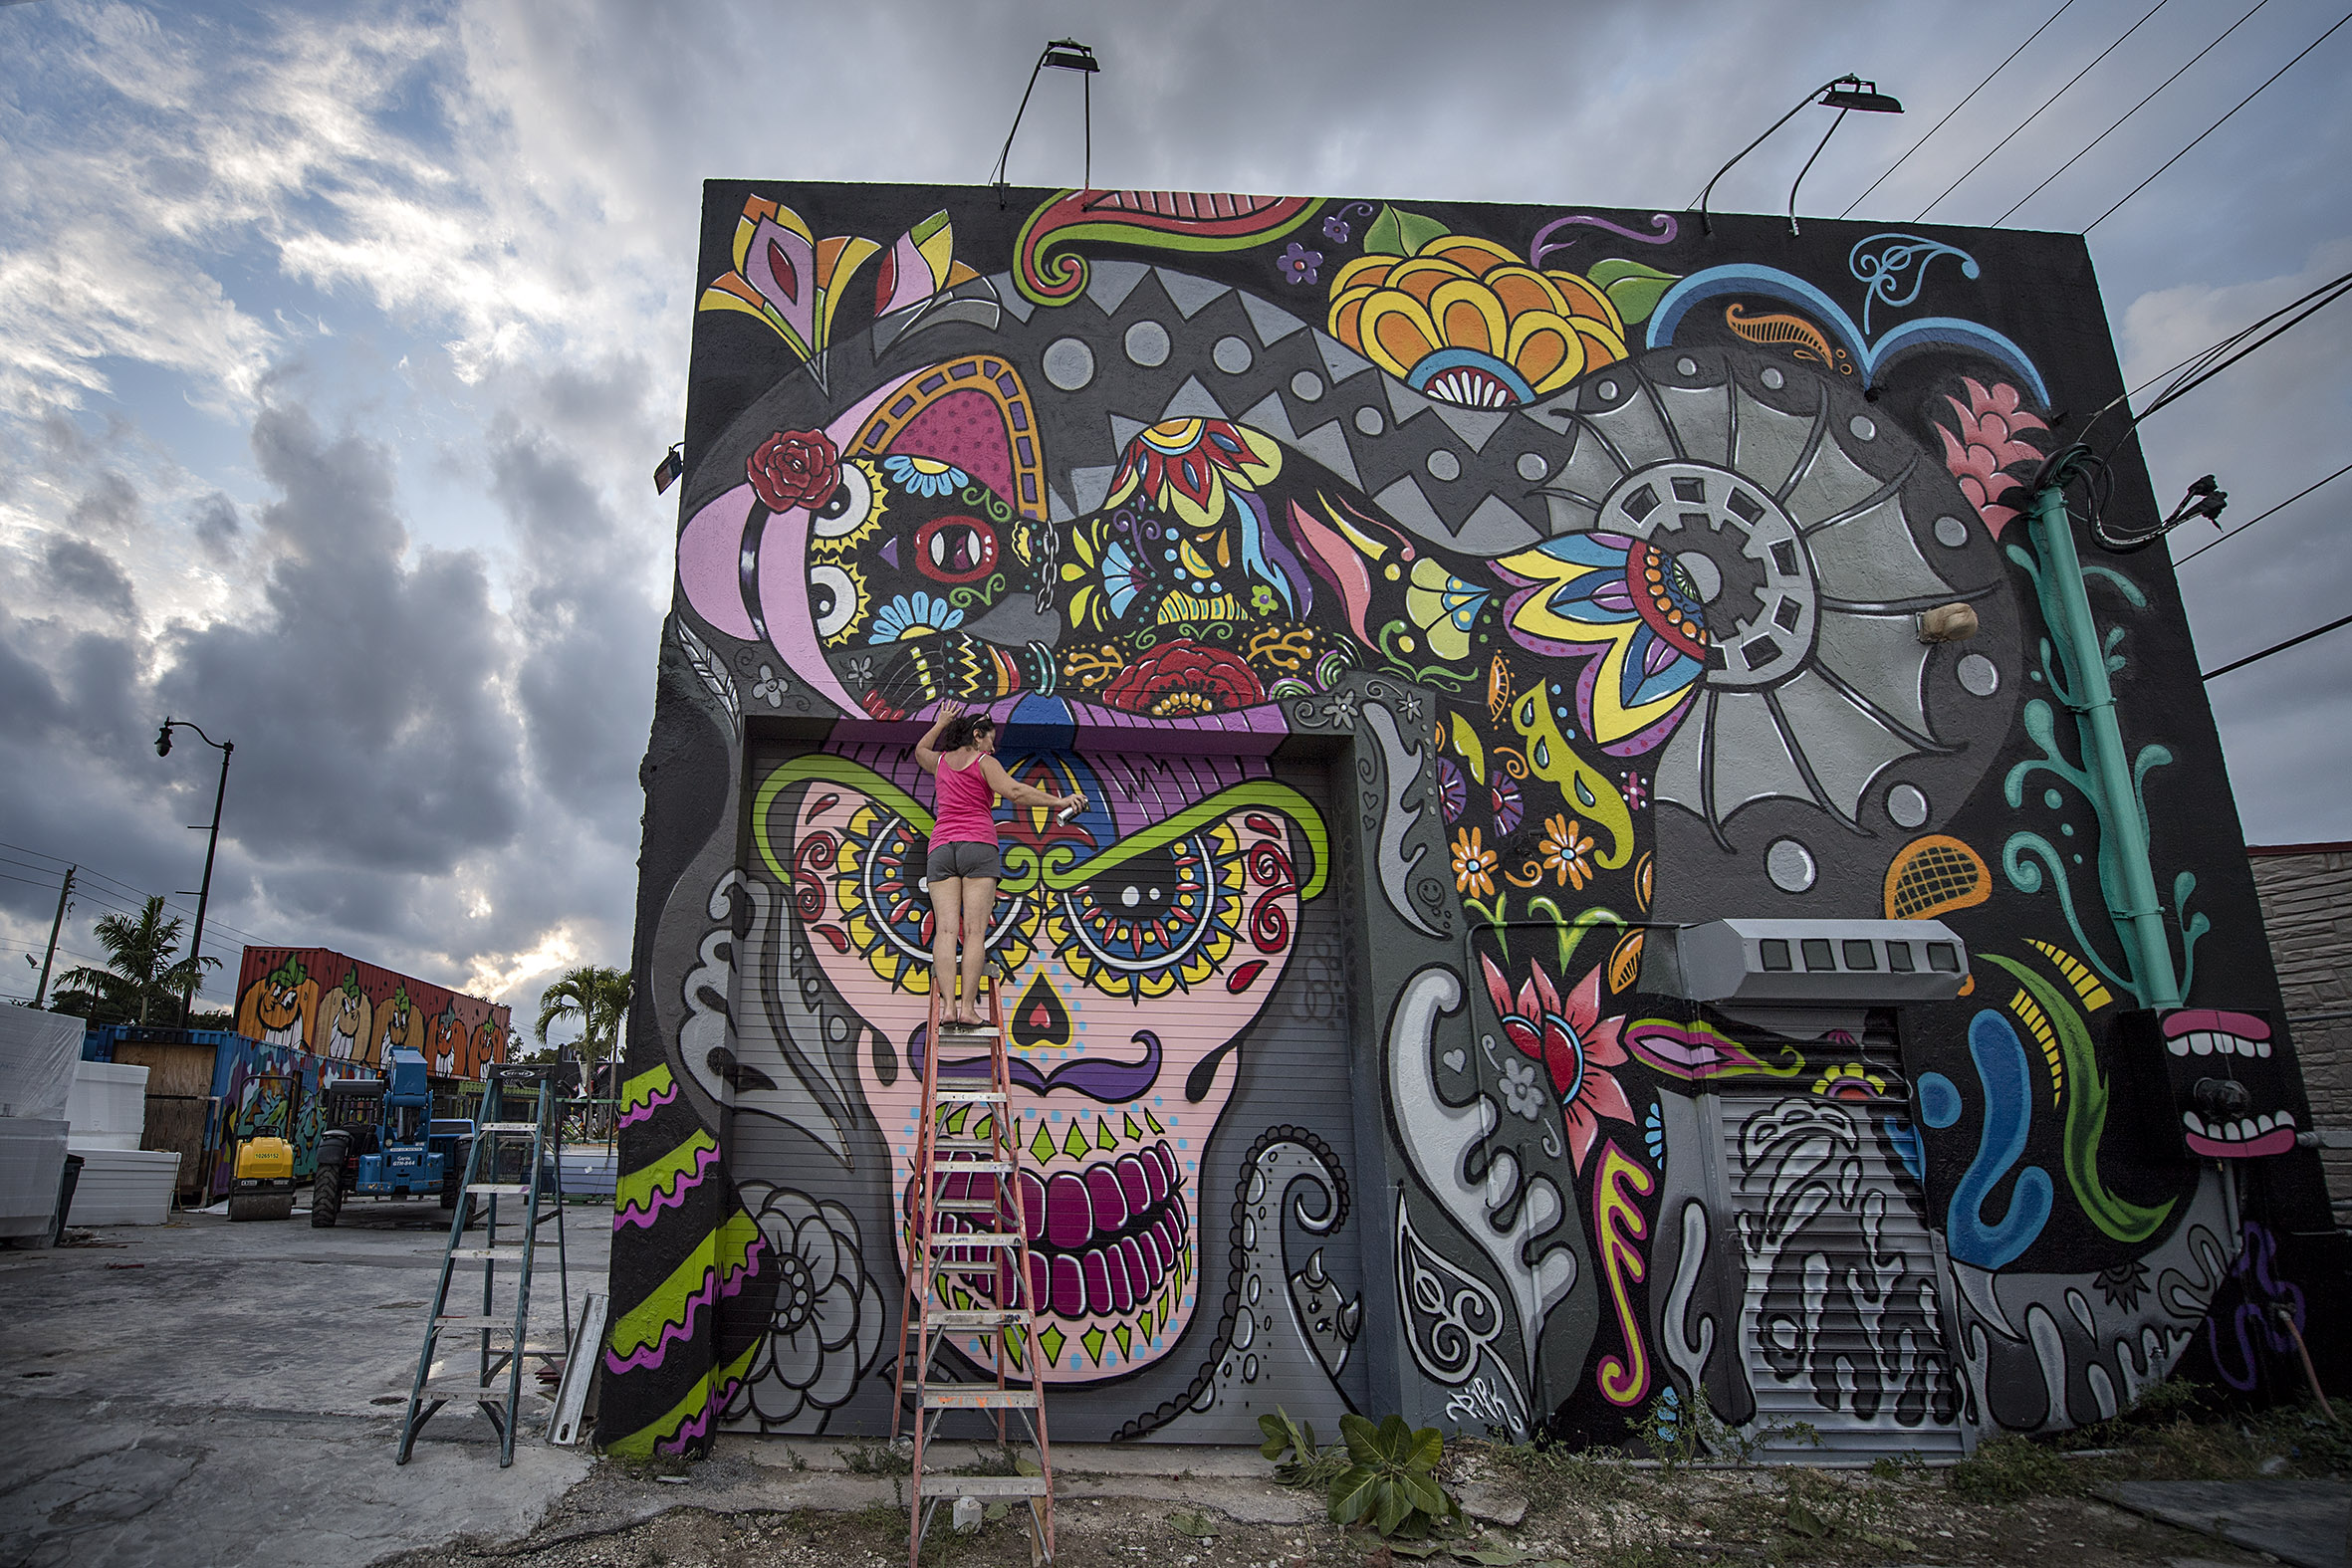 Wynwood2018-7561 copy 2.jpg